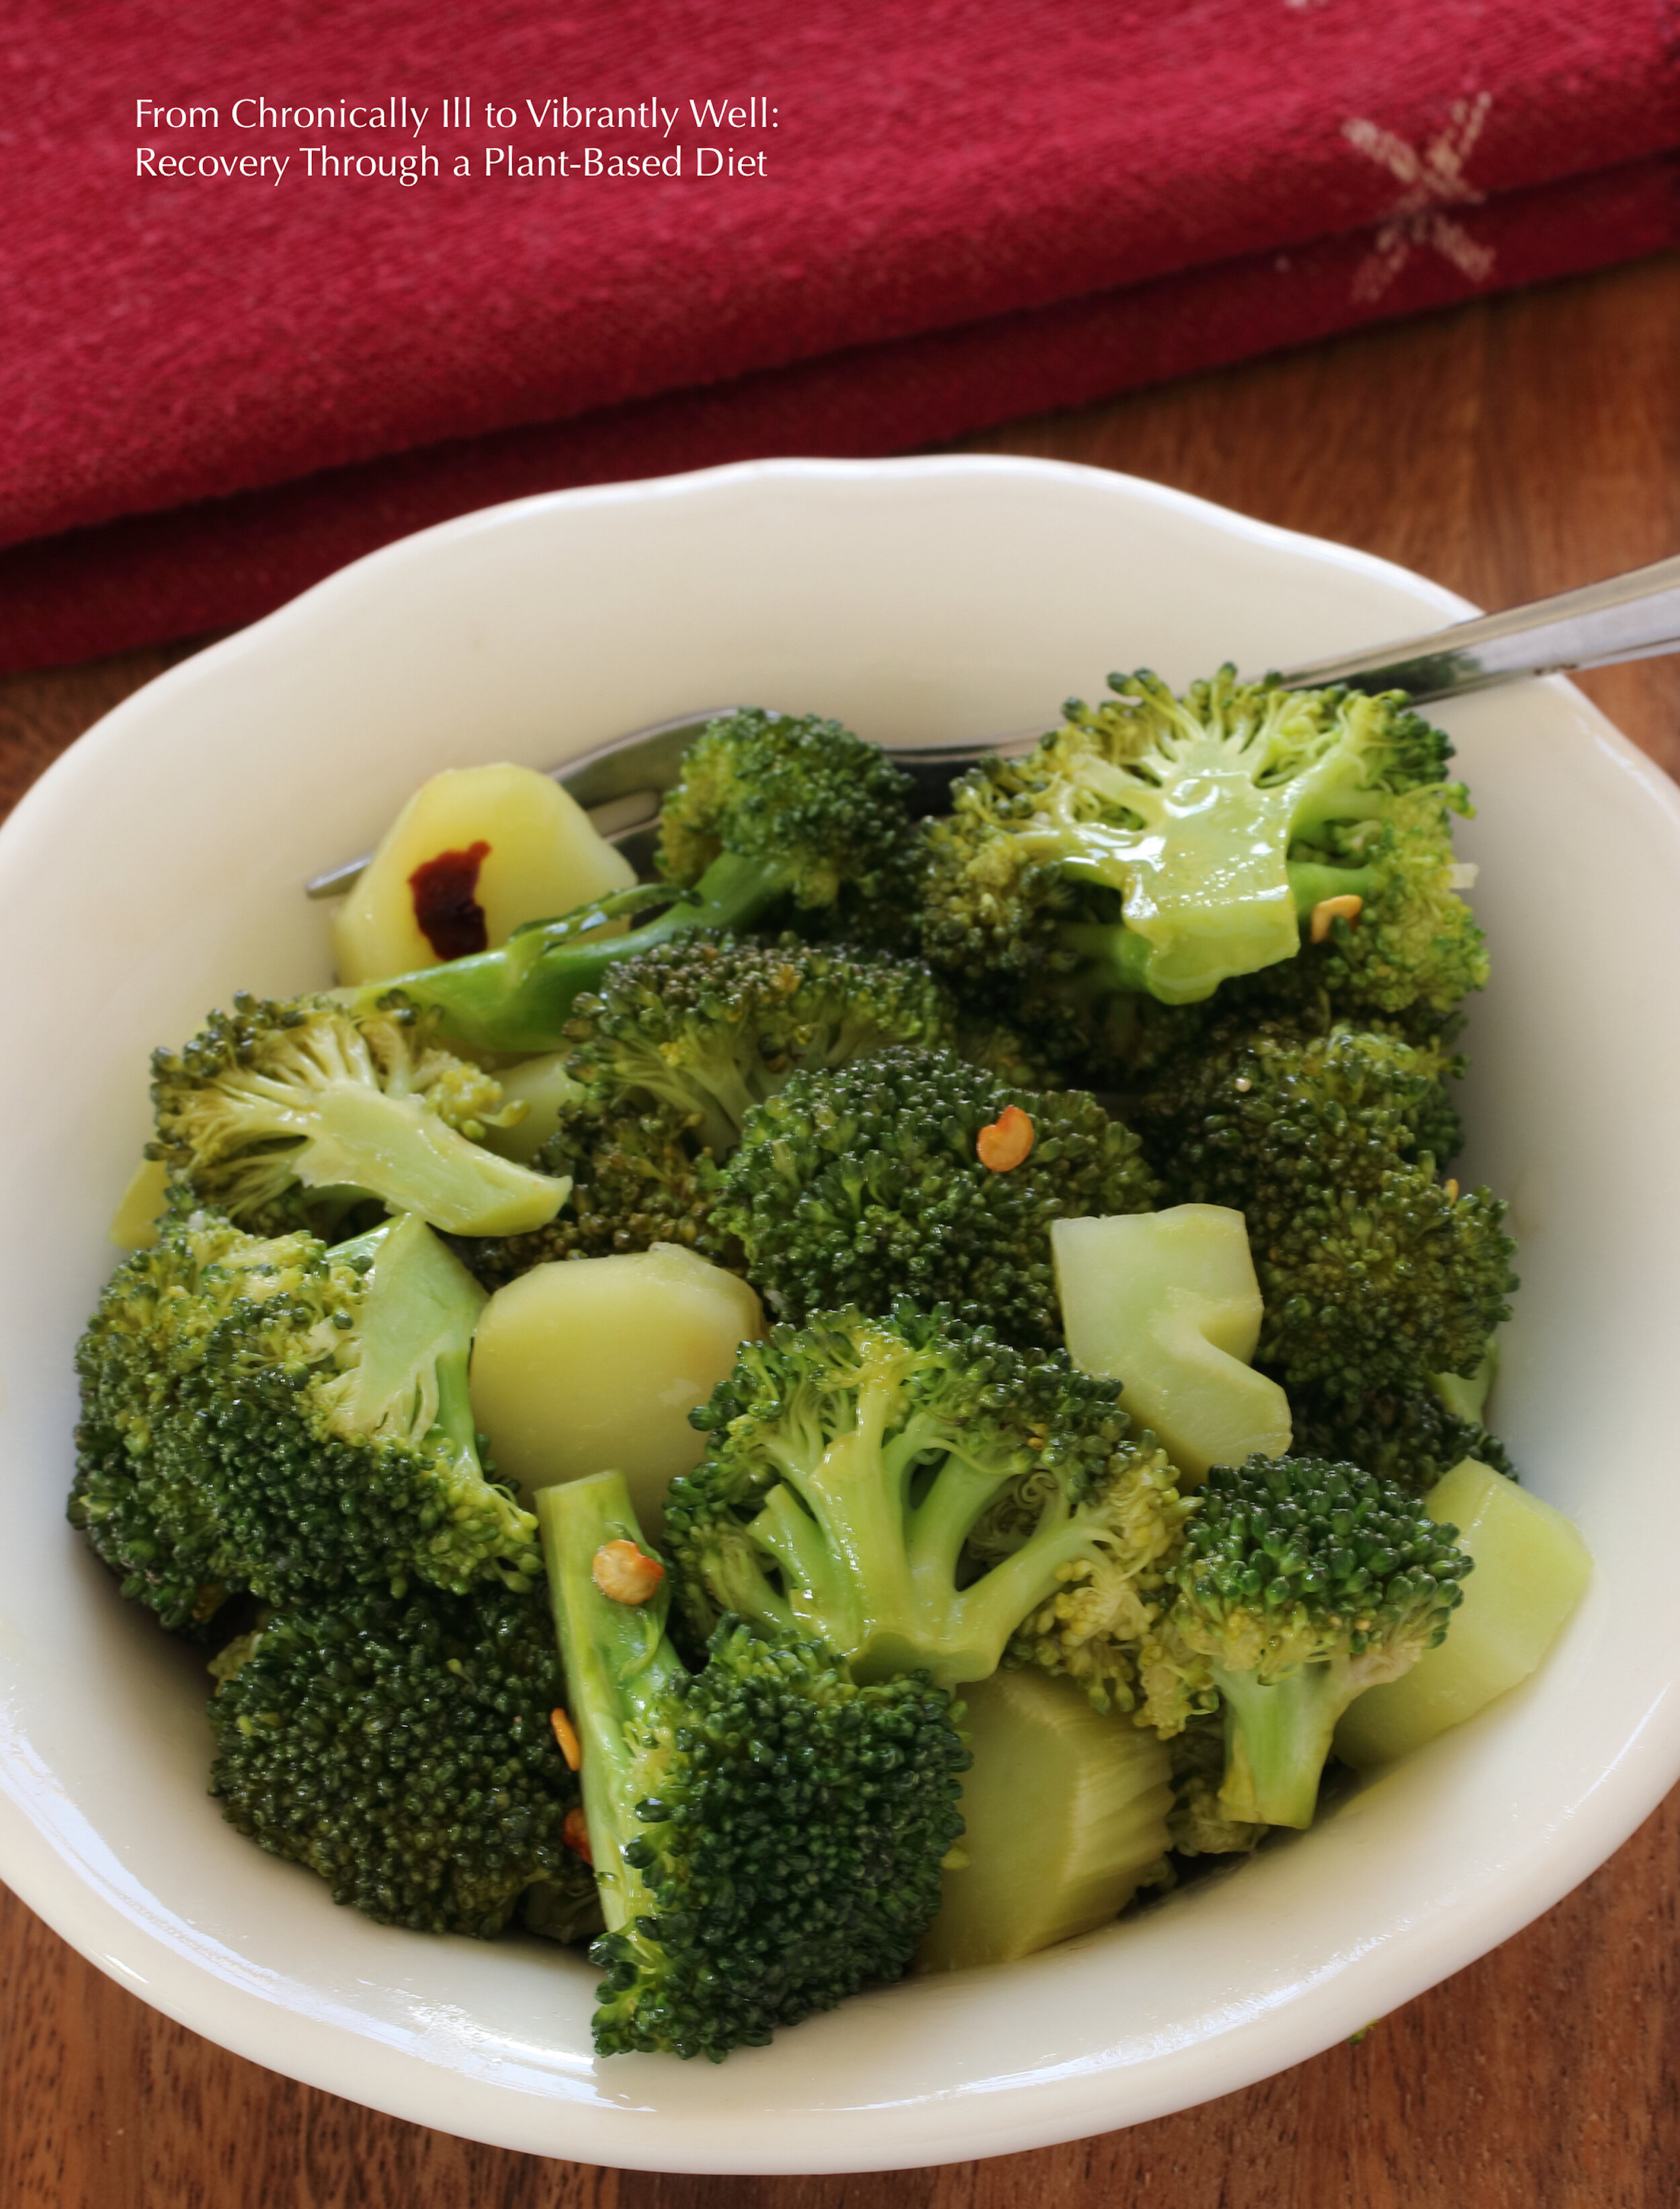 Mary's Broccoli Salad